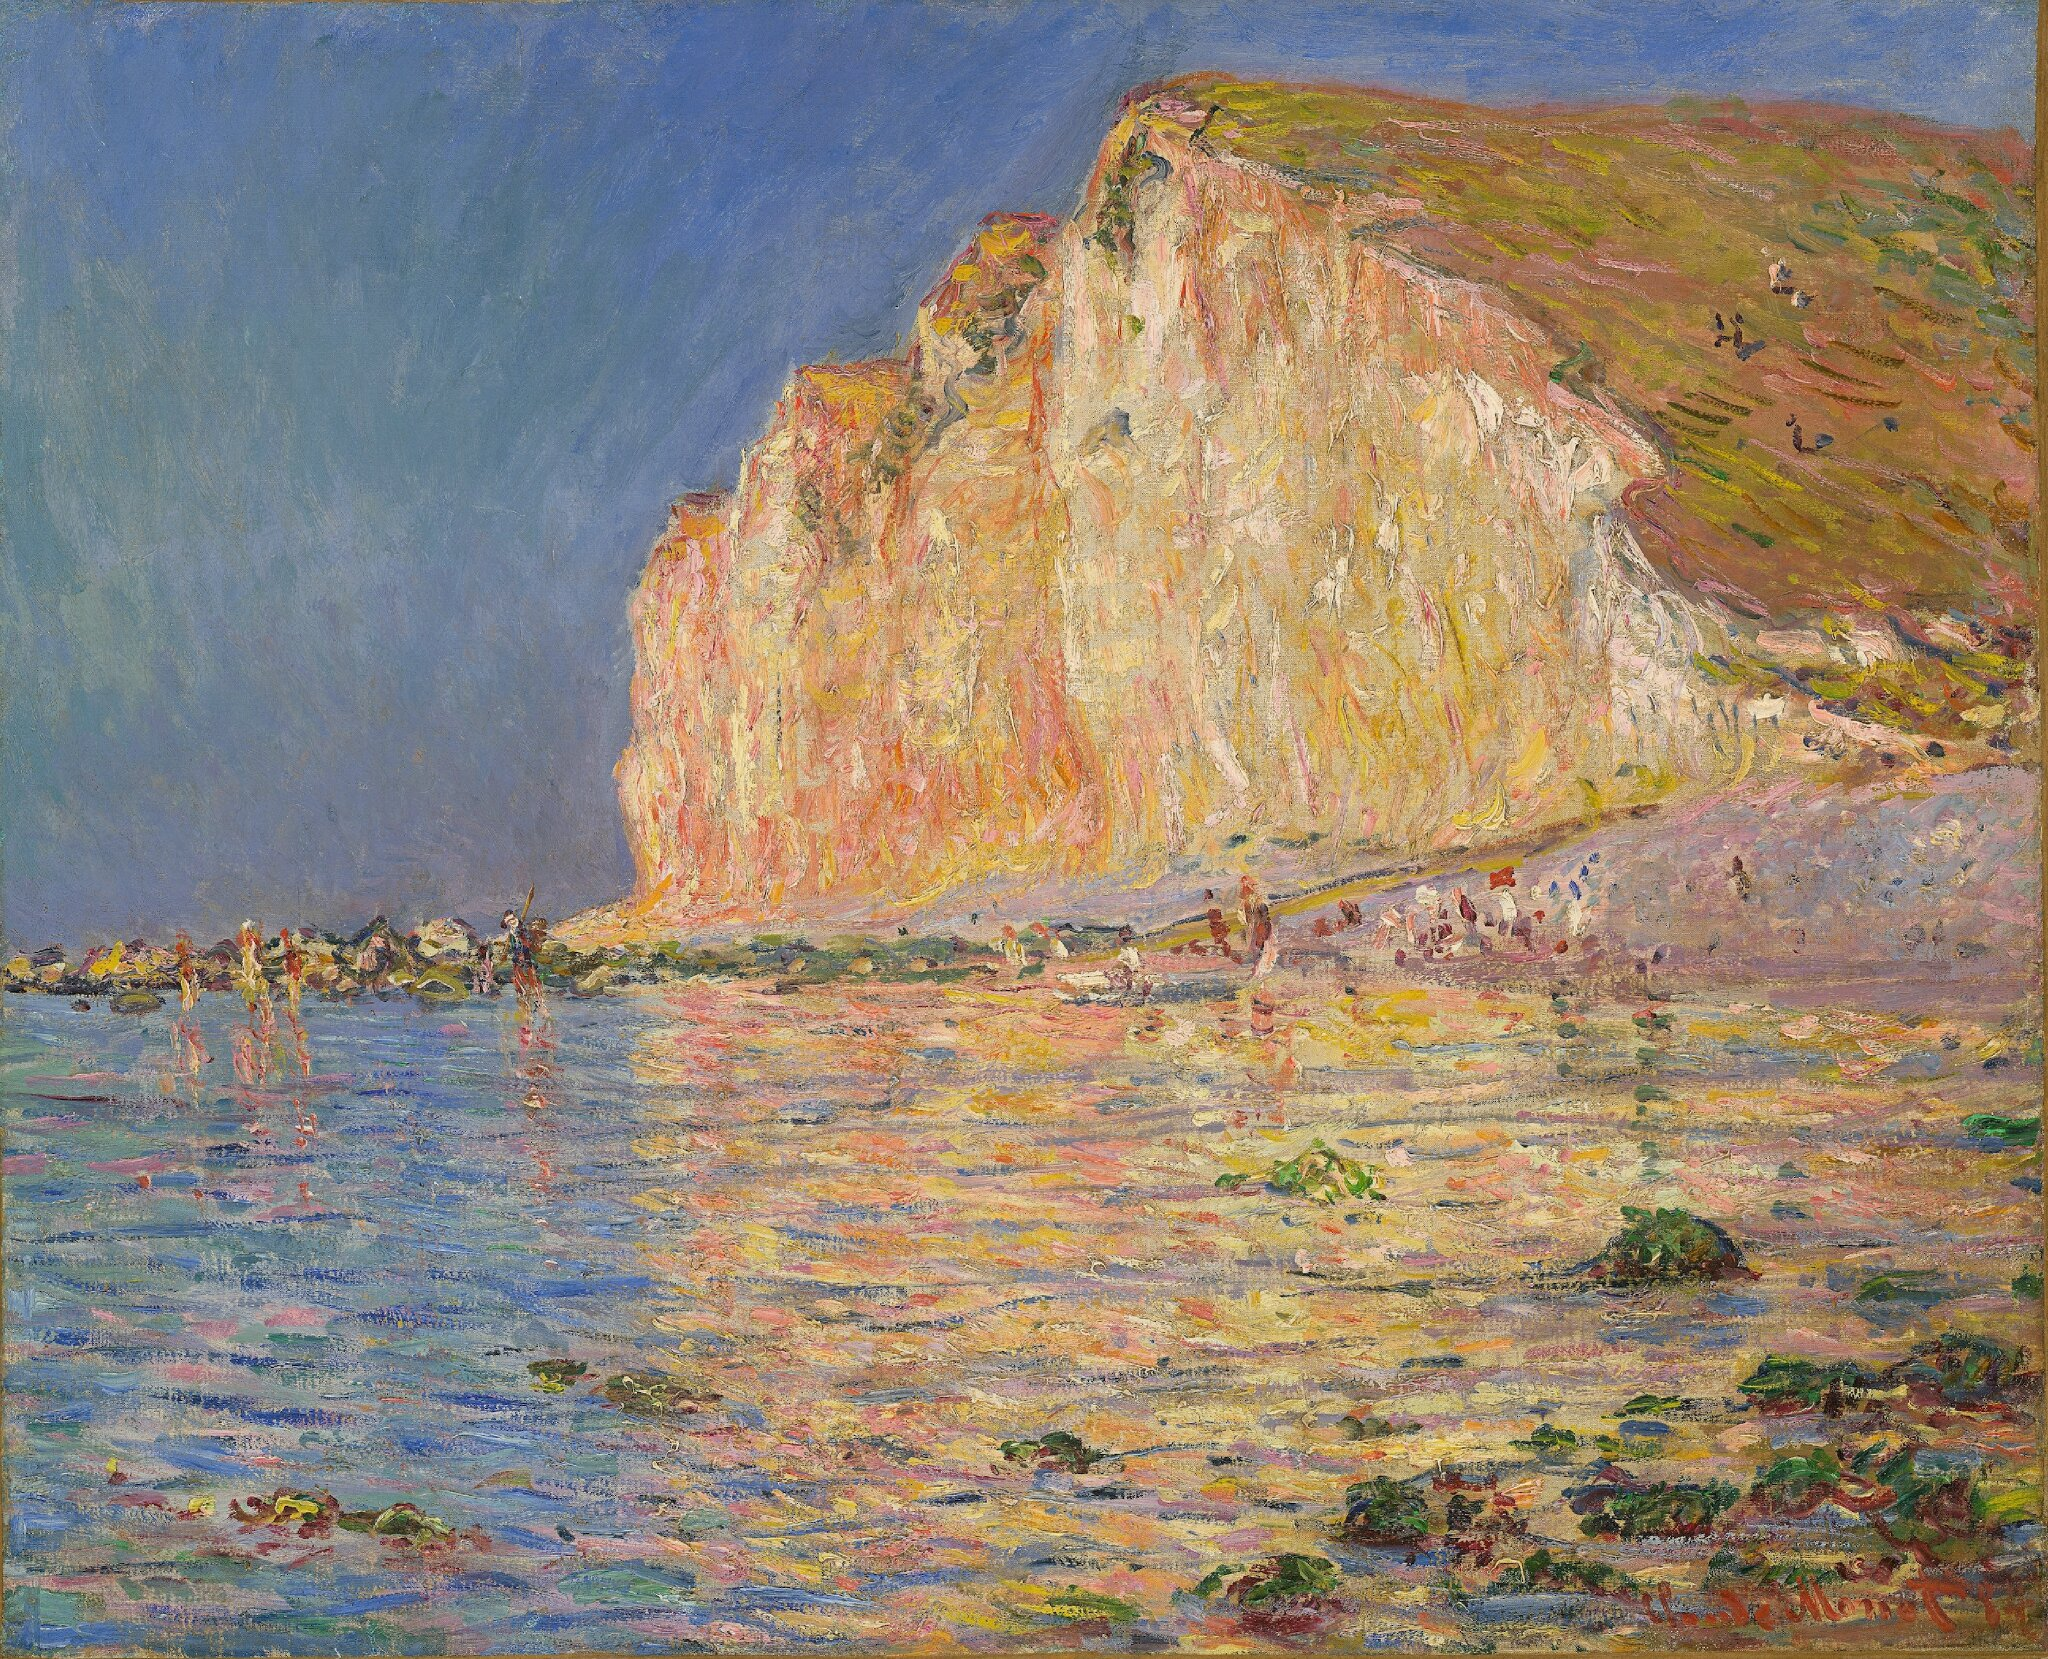 monets water lilllies in private collection